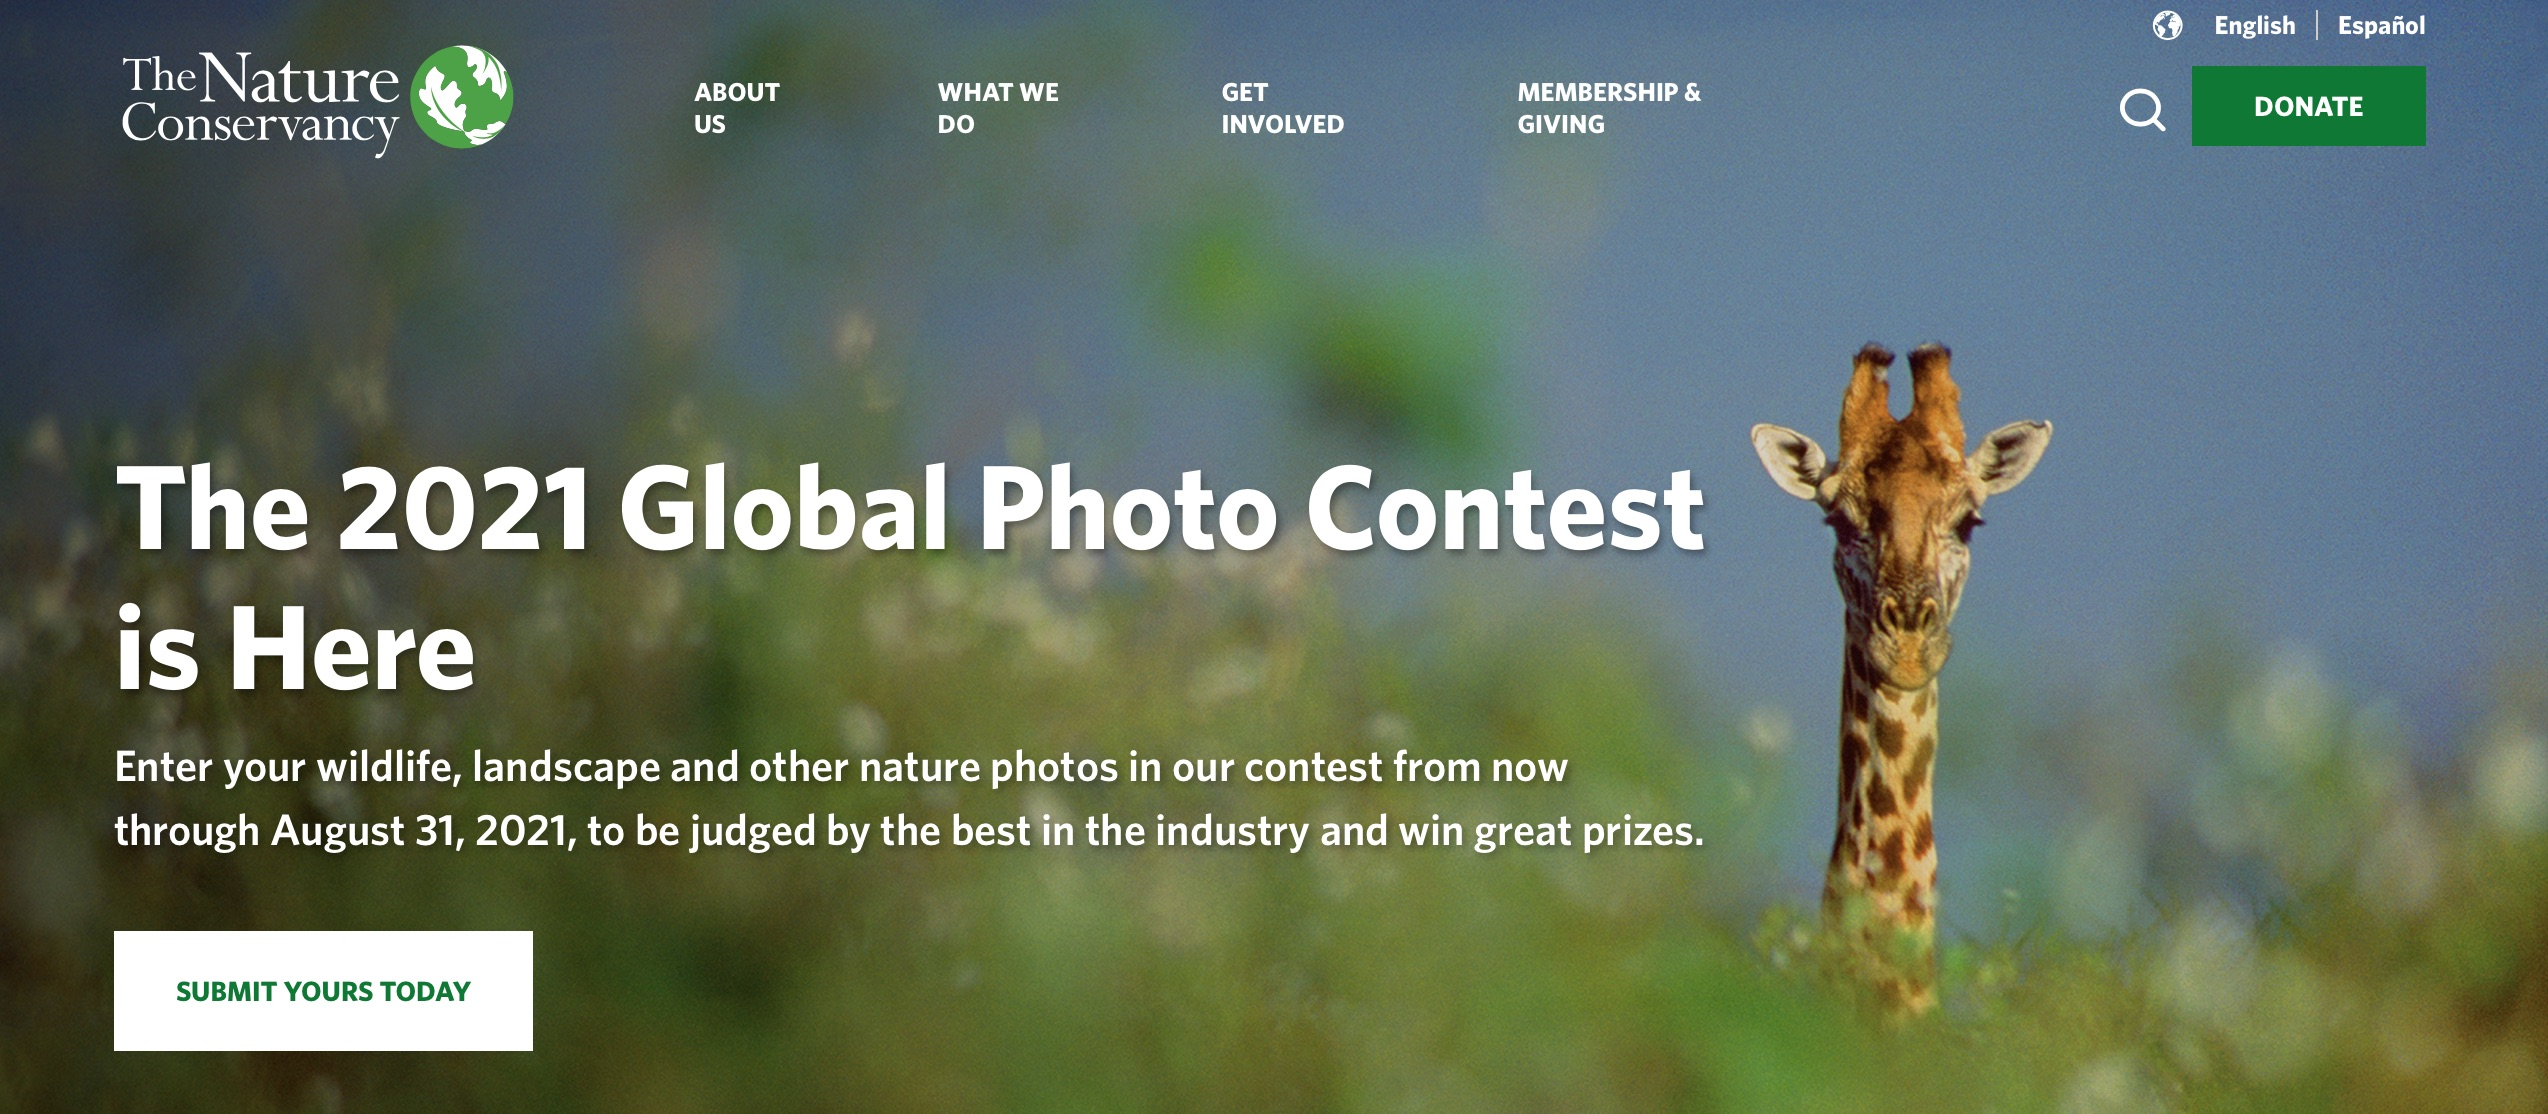 digital marketing call-to-action | The Nature Conservancy | Agency Vista